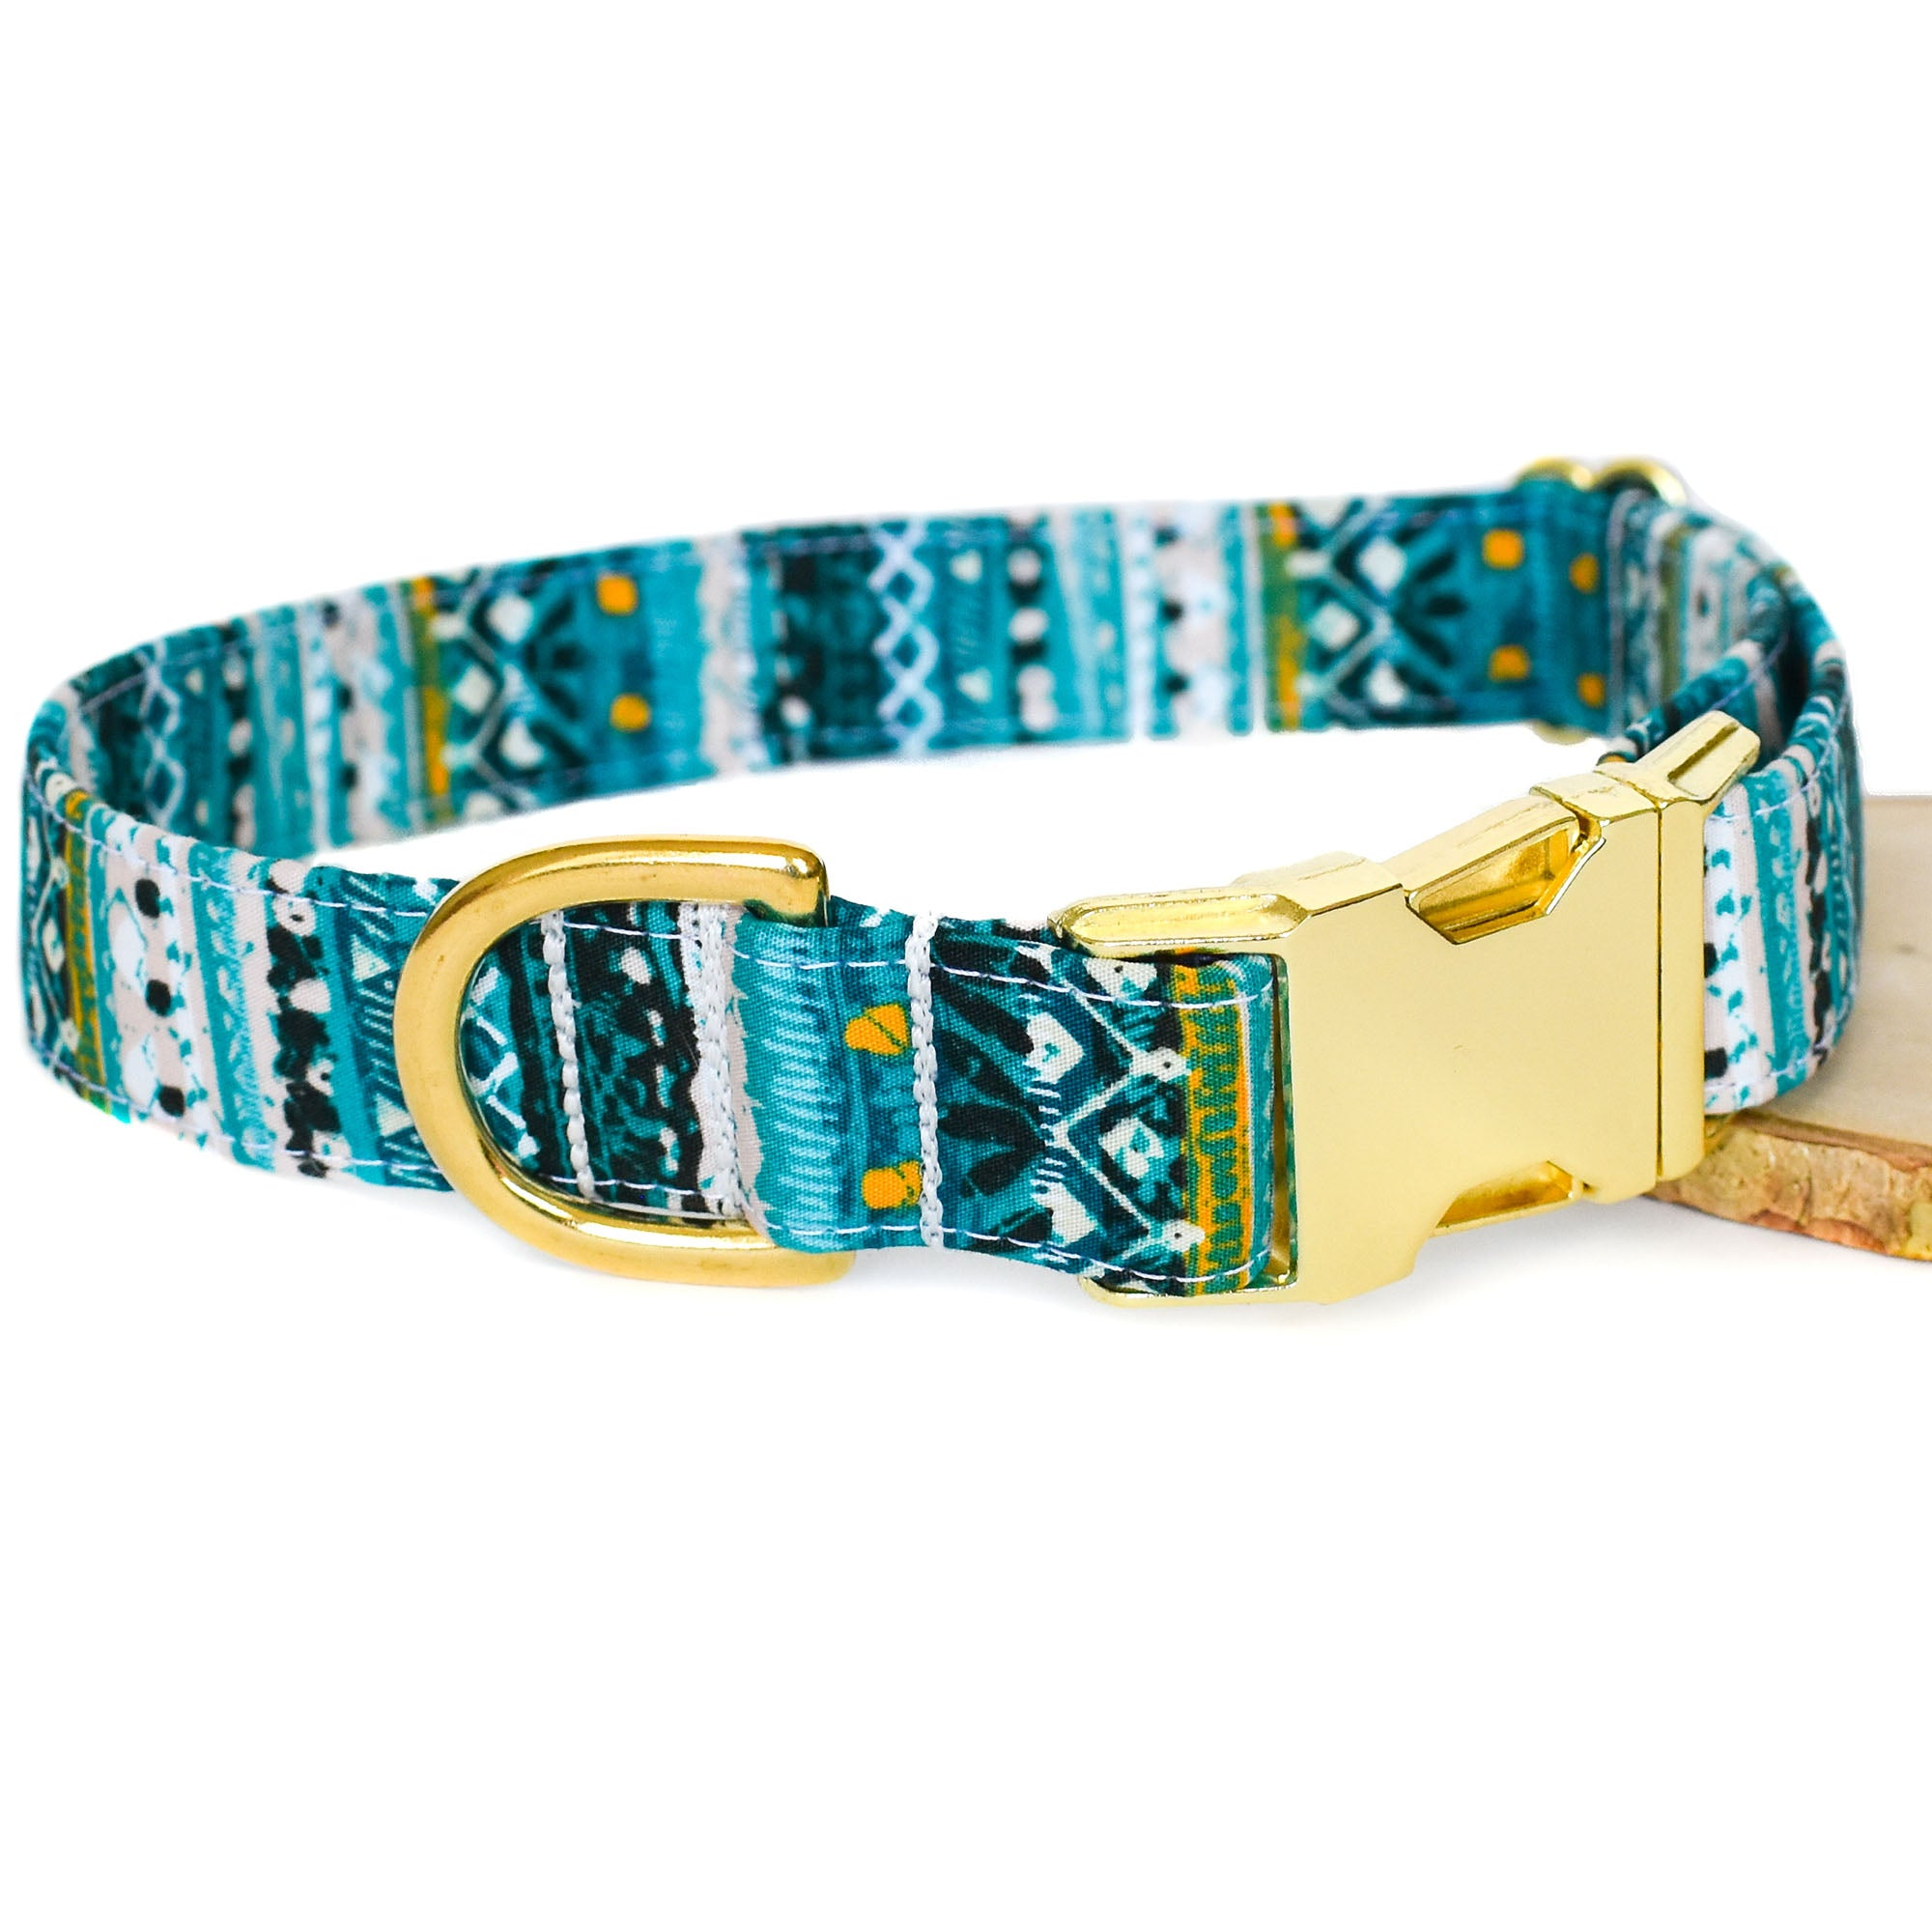 THE INKA DOG COLLAR